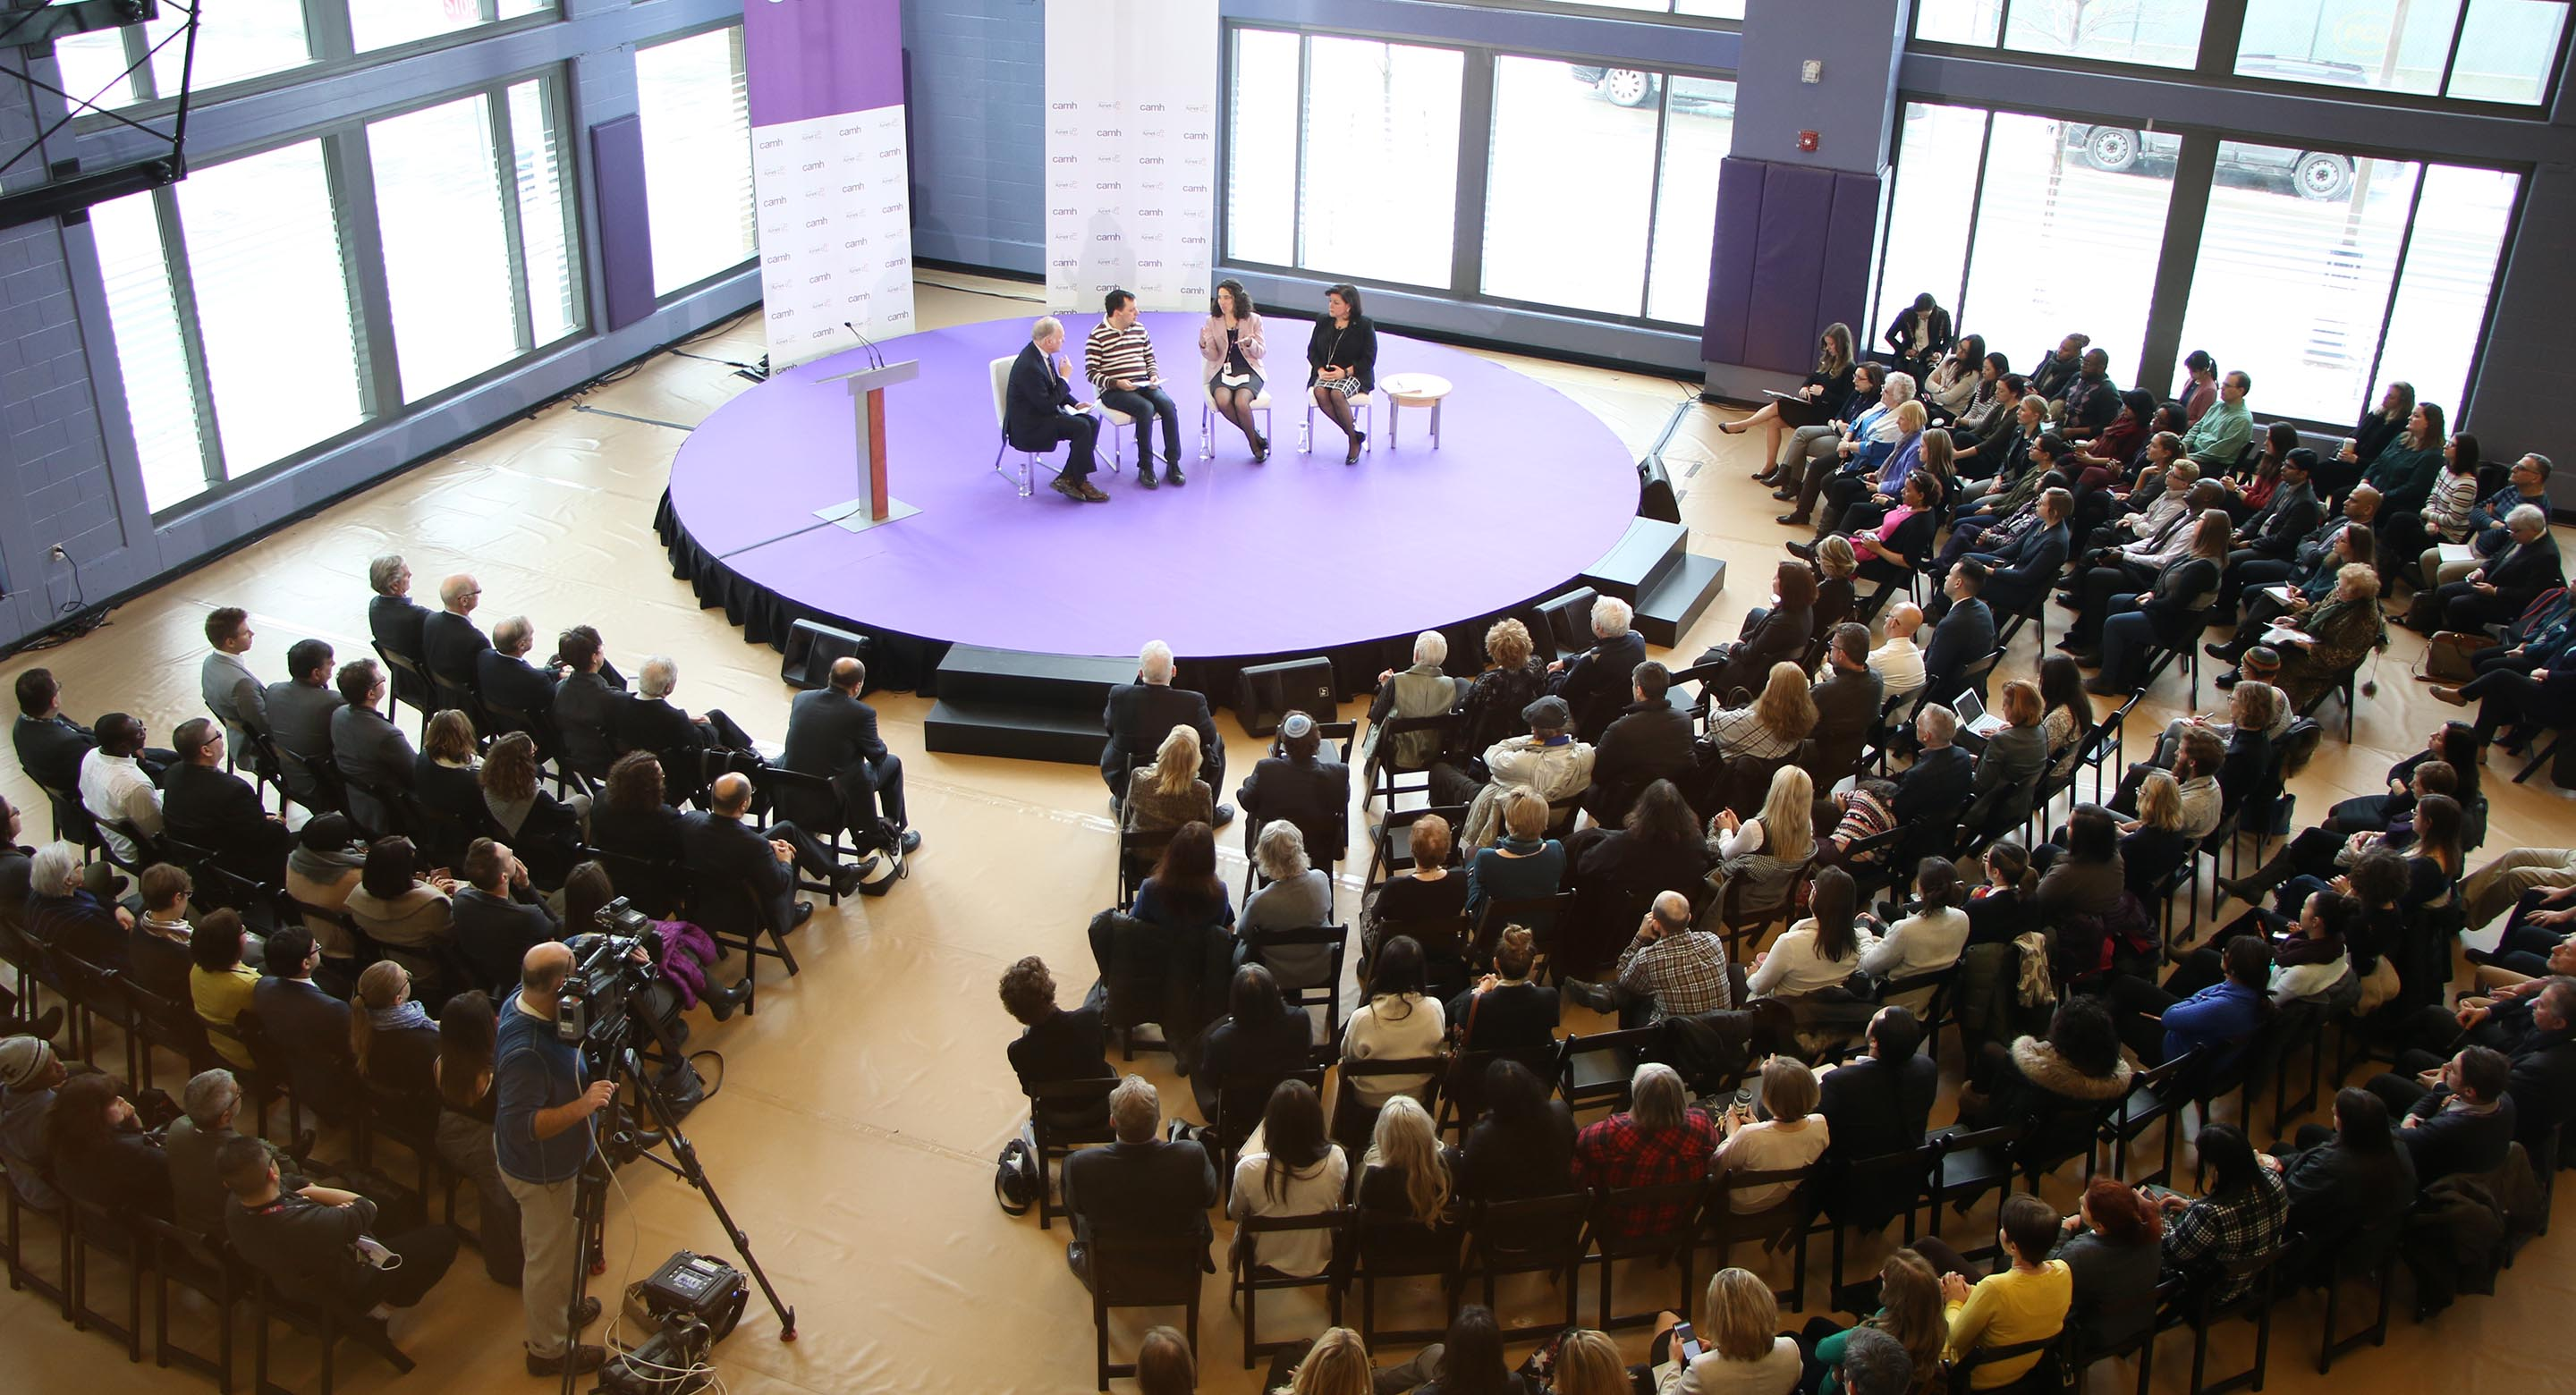 CAMH is host to a number of events open to staff and the community.